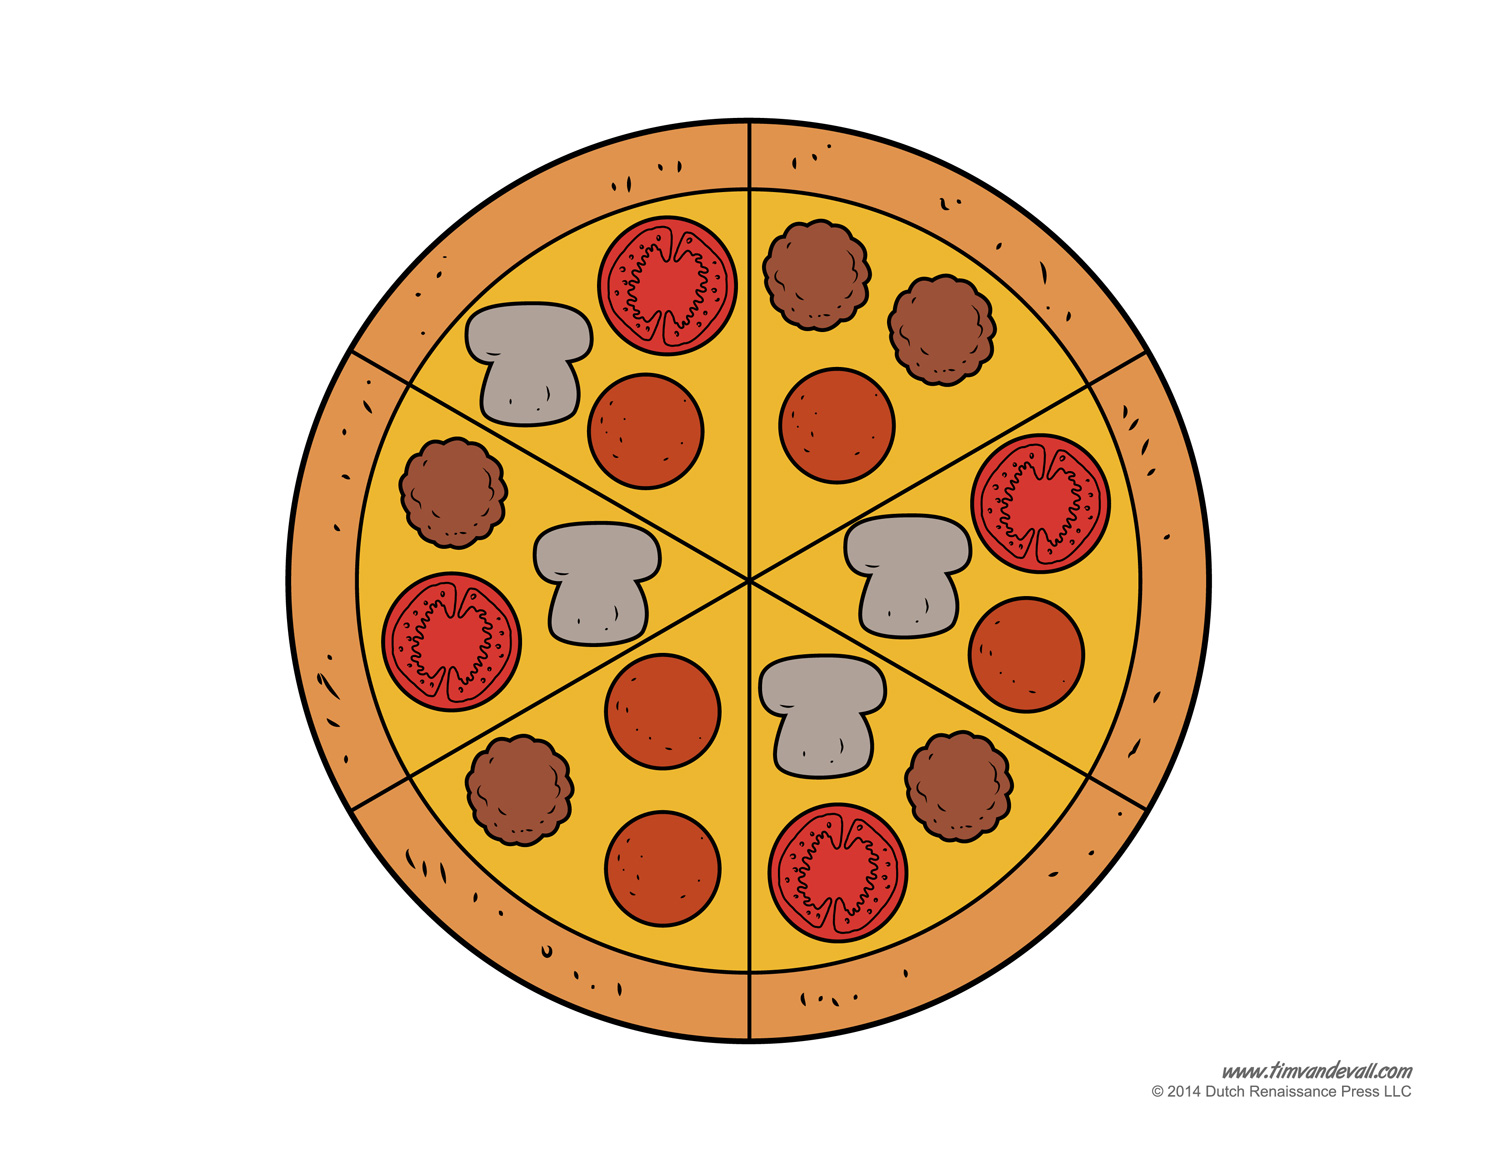 And finally, the supreme pizza. Like the pepperoni pizza templates ...